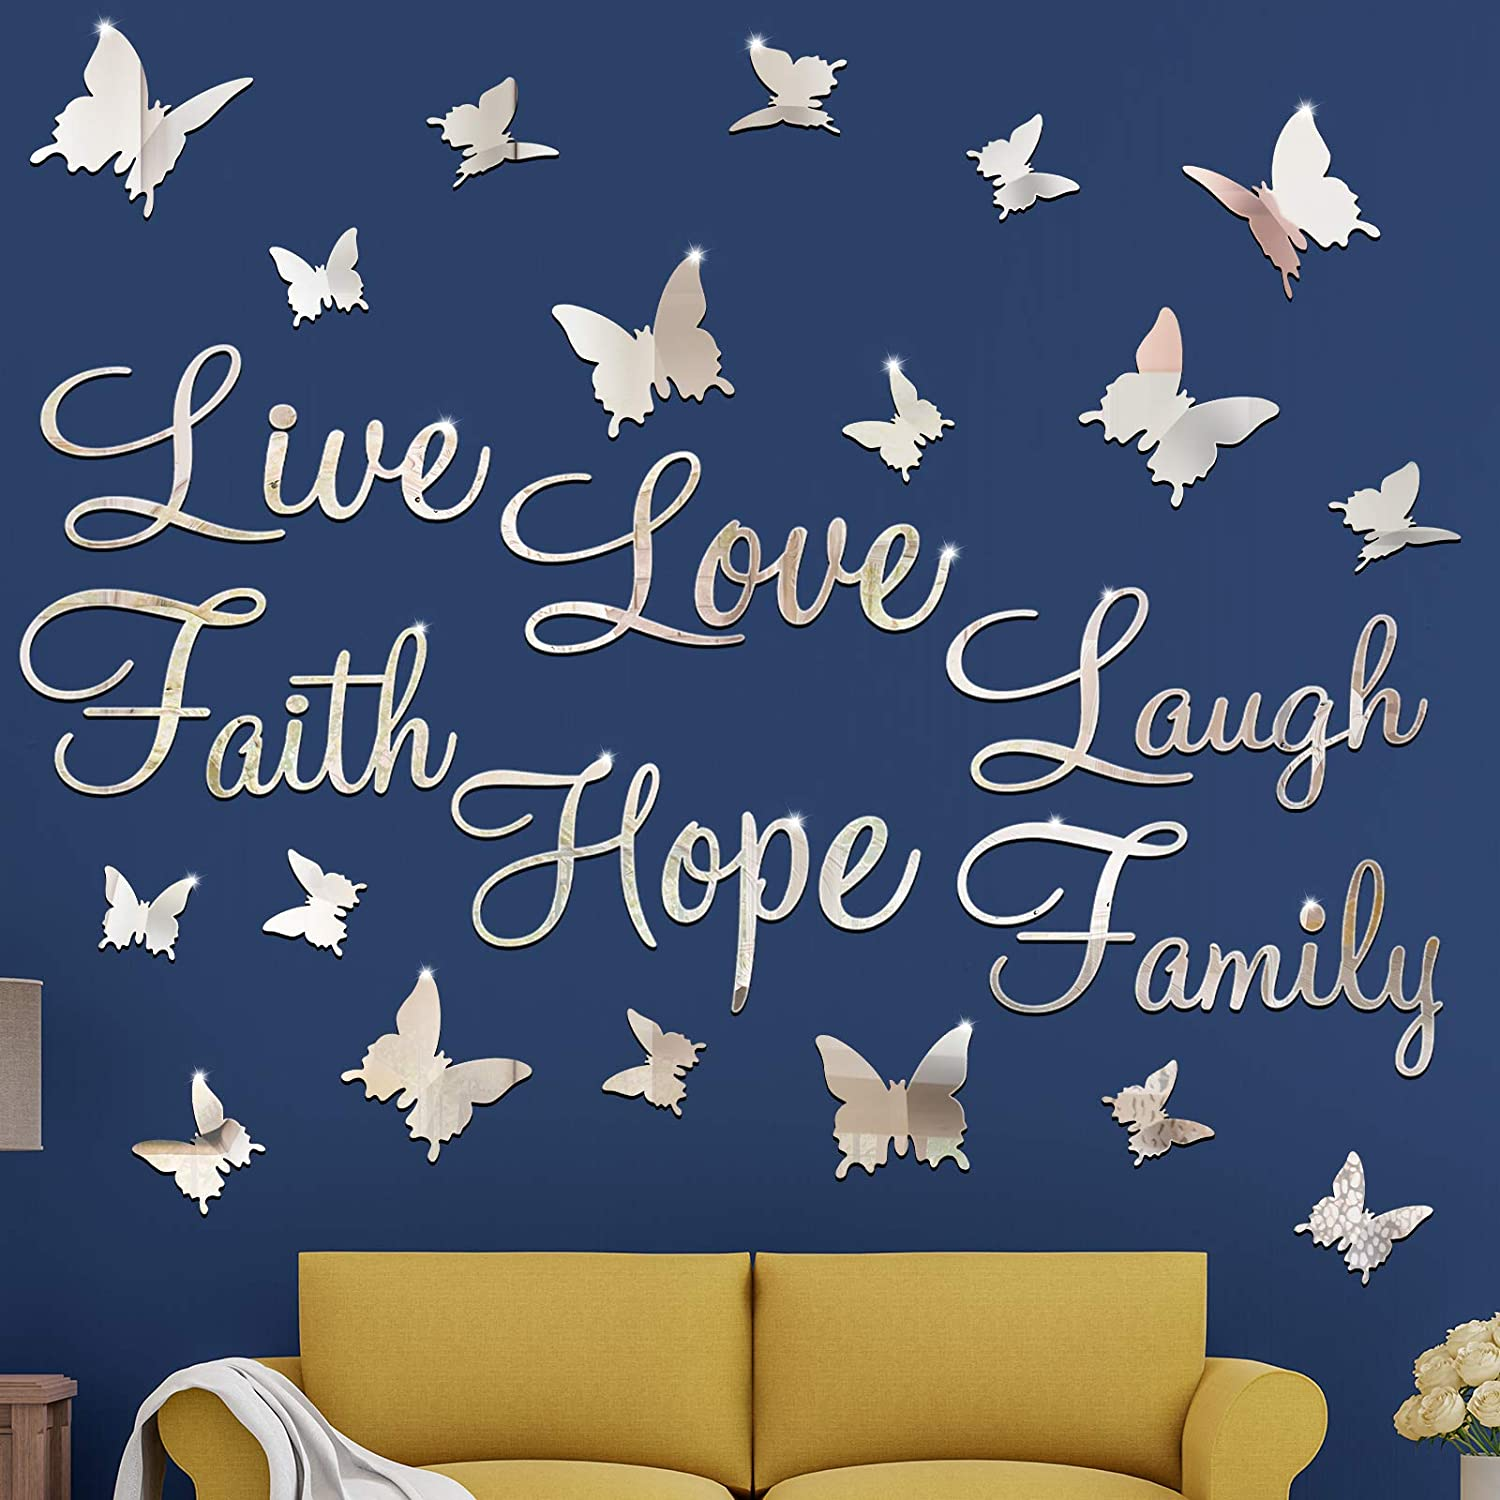 3D Acrylic Mirror Wall Decor Stickers DIY Silver Faith Live Laugh Hope Love Family Butterfly Removable Mural Stickers for Home Office School Teen Dorm Room Mirror Wall Decoration Decal